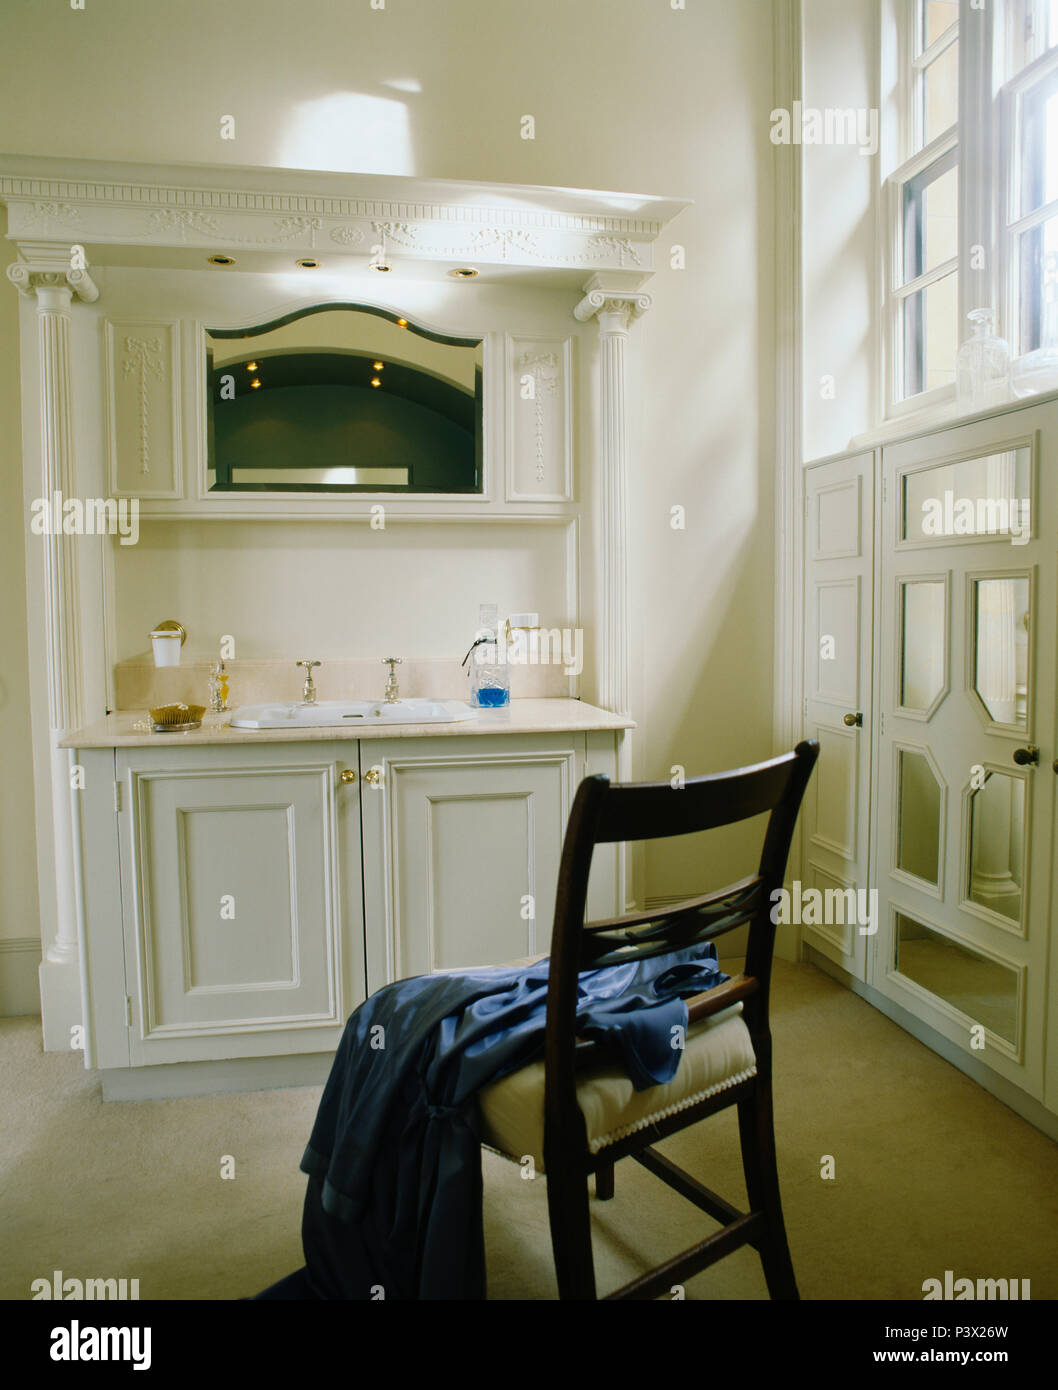 Mirror above fitted vanity unit in townhouse bathroom with blue robe on antique chair Stock Photo